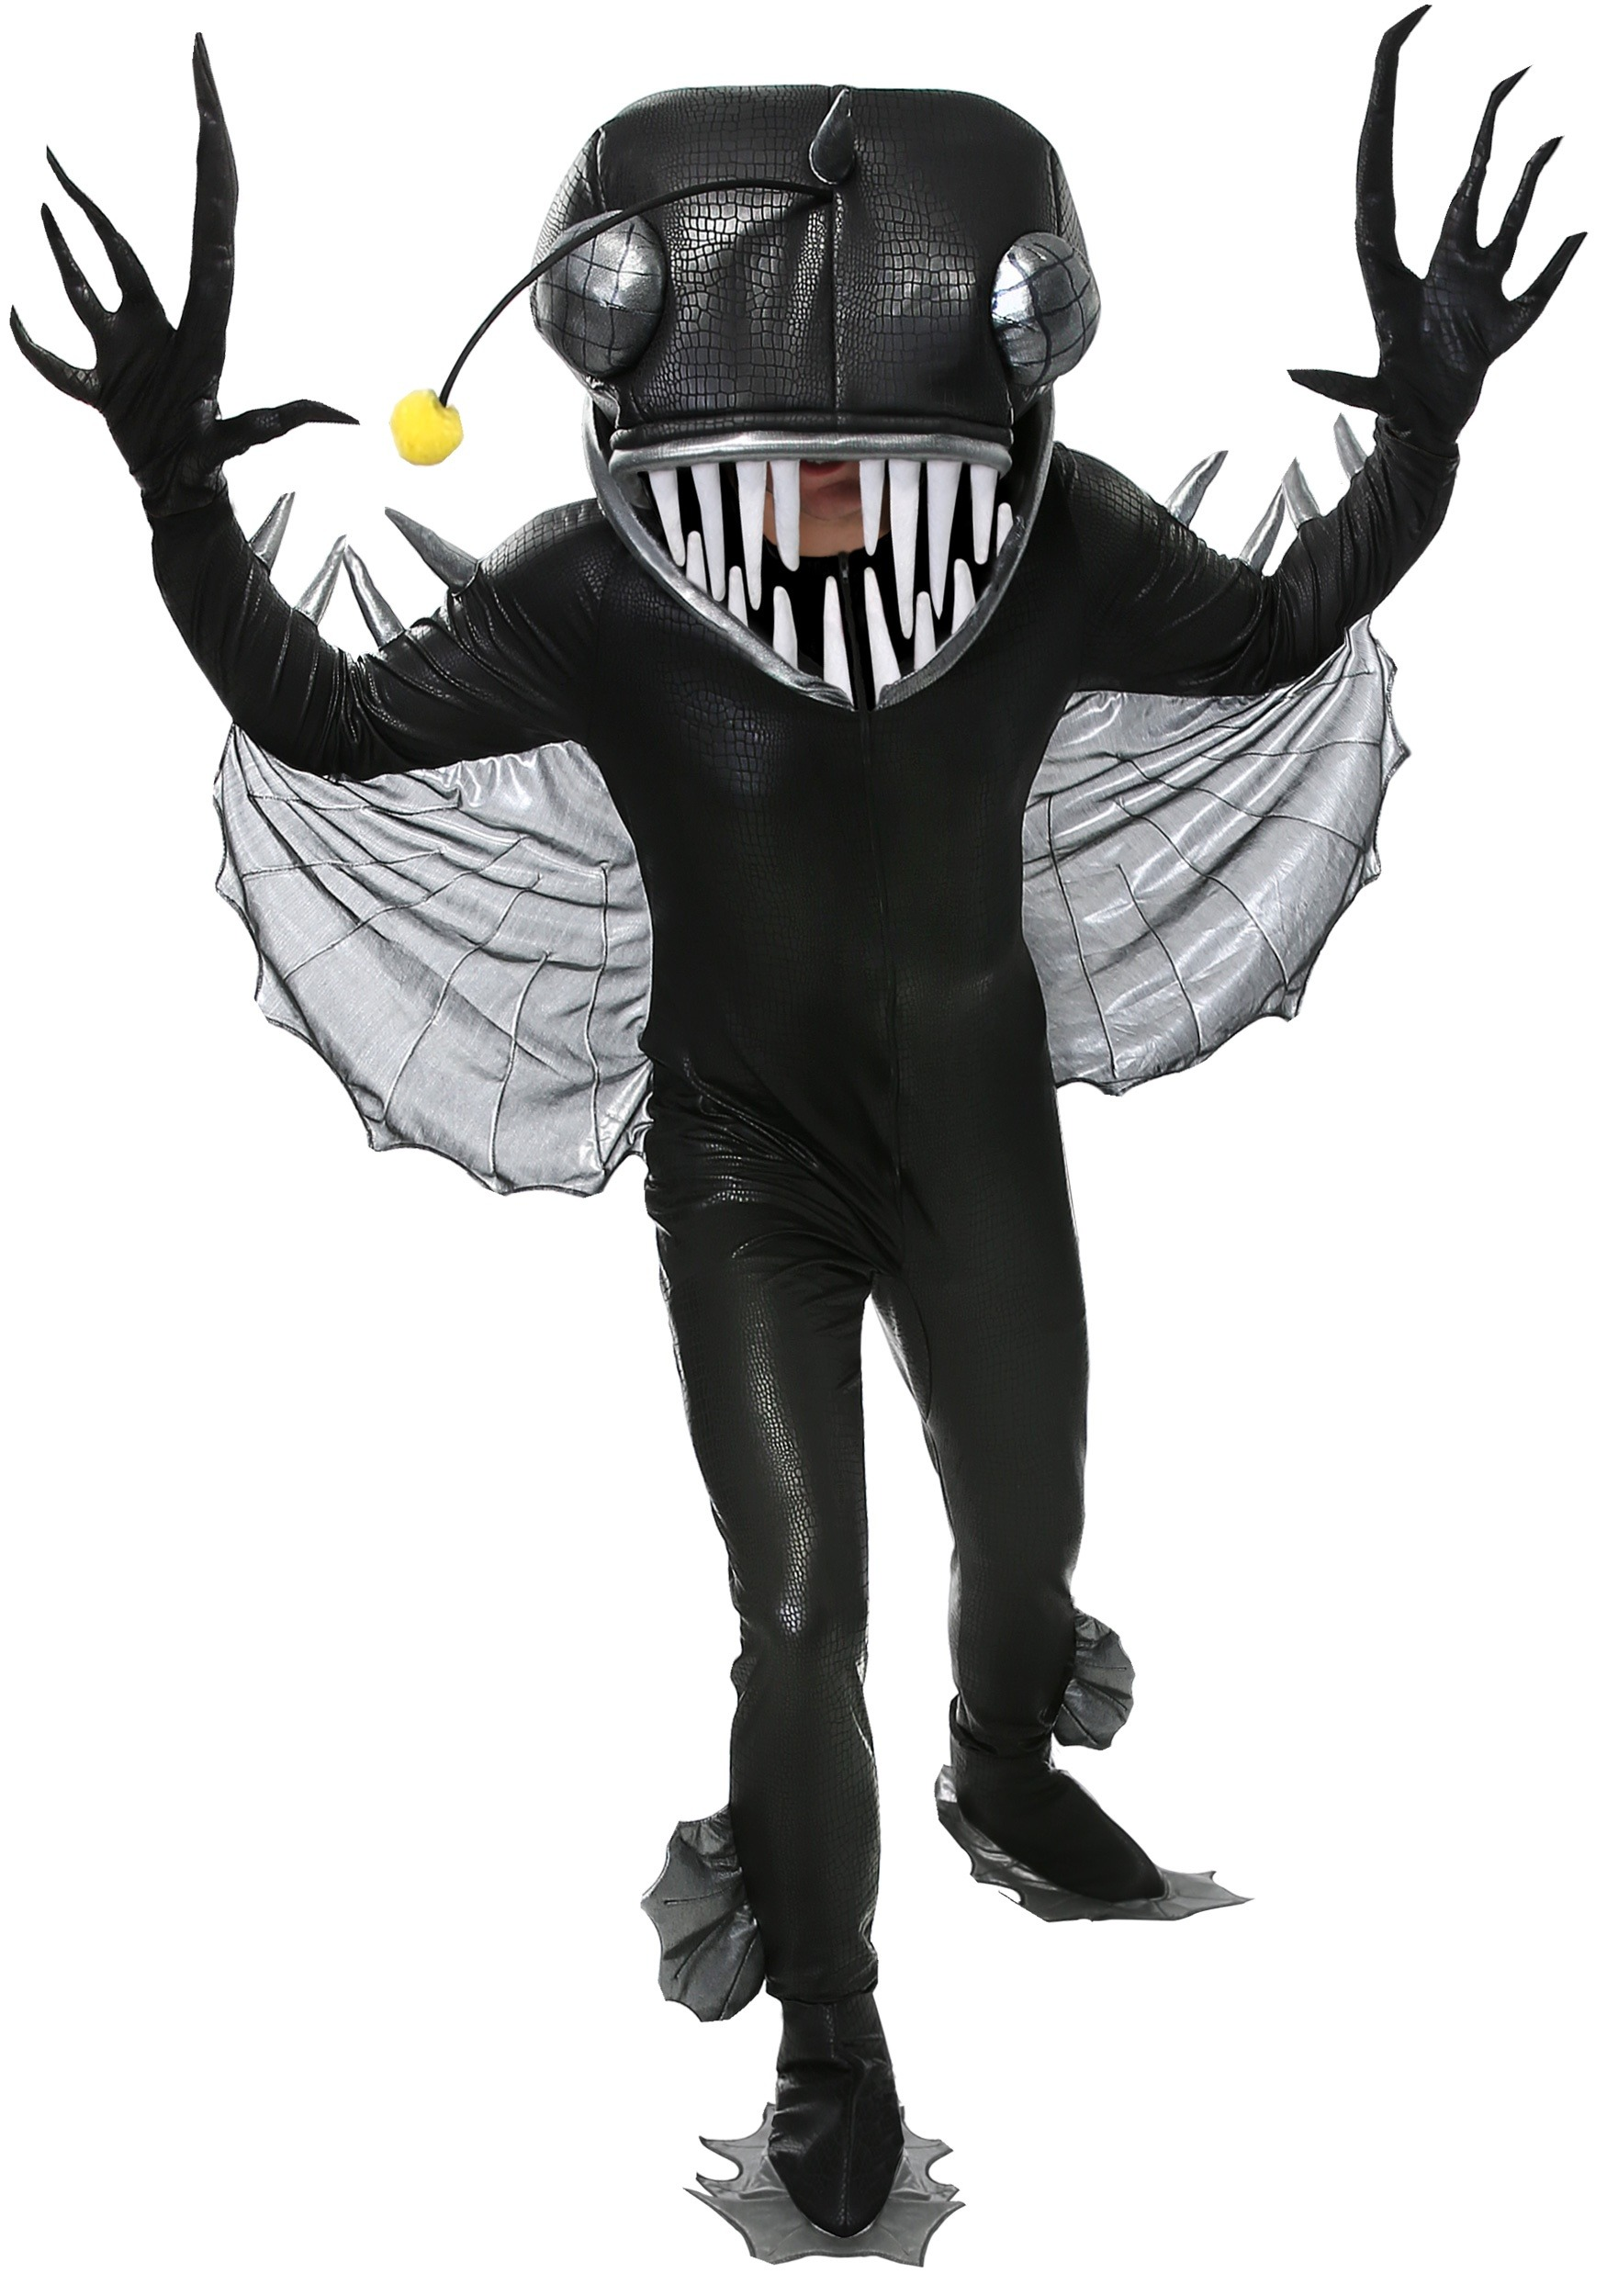 Angler Fish Adult Costume  sc 1 st  Halloween Costumes : angler fish costume  - Germanpascual.Com